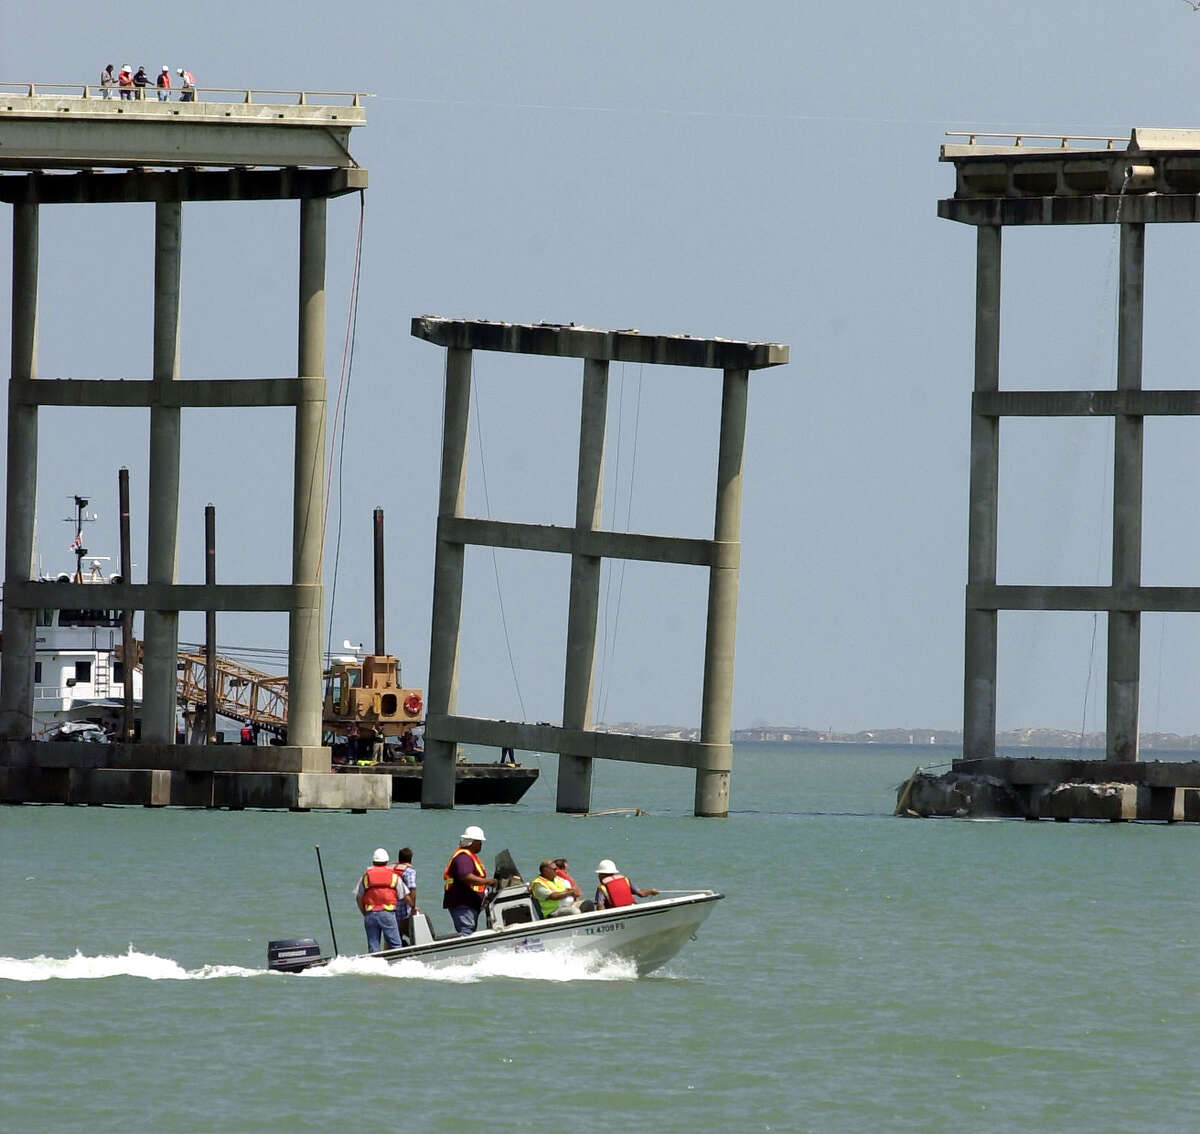 A boat passes a section of the Queen Isabella Causeway that collapsed as crews survey the area in Port Isabell, Texas, Saturday, Sept. 15, 2001. A section on the bridge collapsed when it was struck by a barge early Saturday morning killing at least four people and plunging cars into the water some 85 feet below. An unknown number of people were missing.